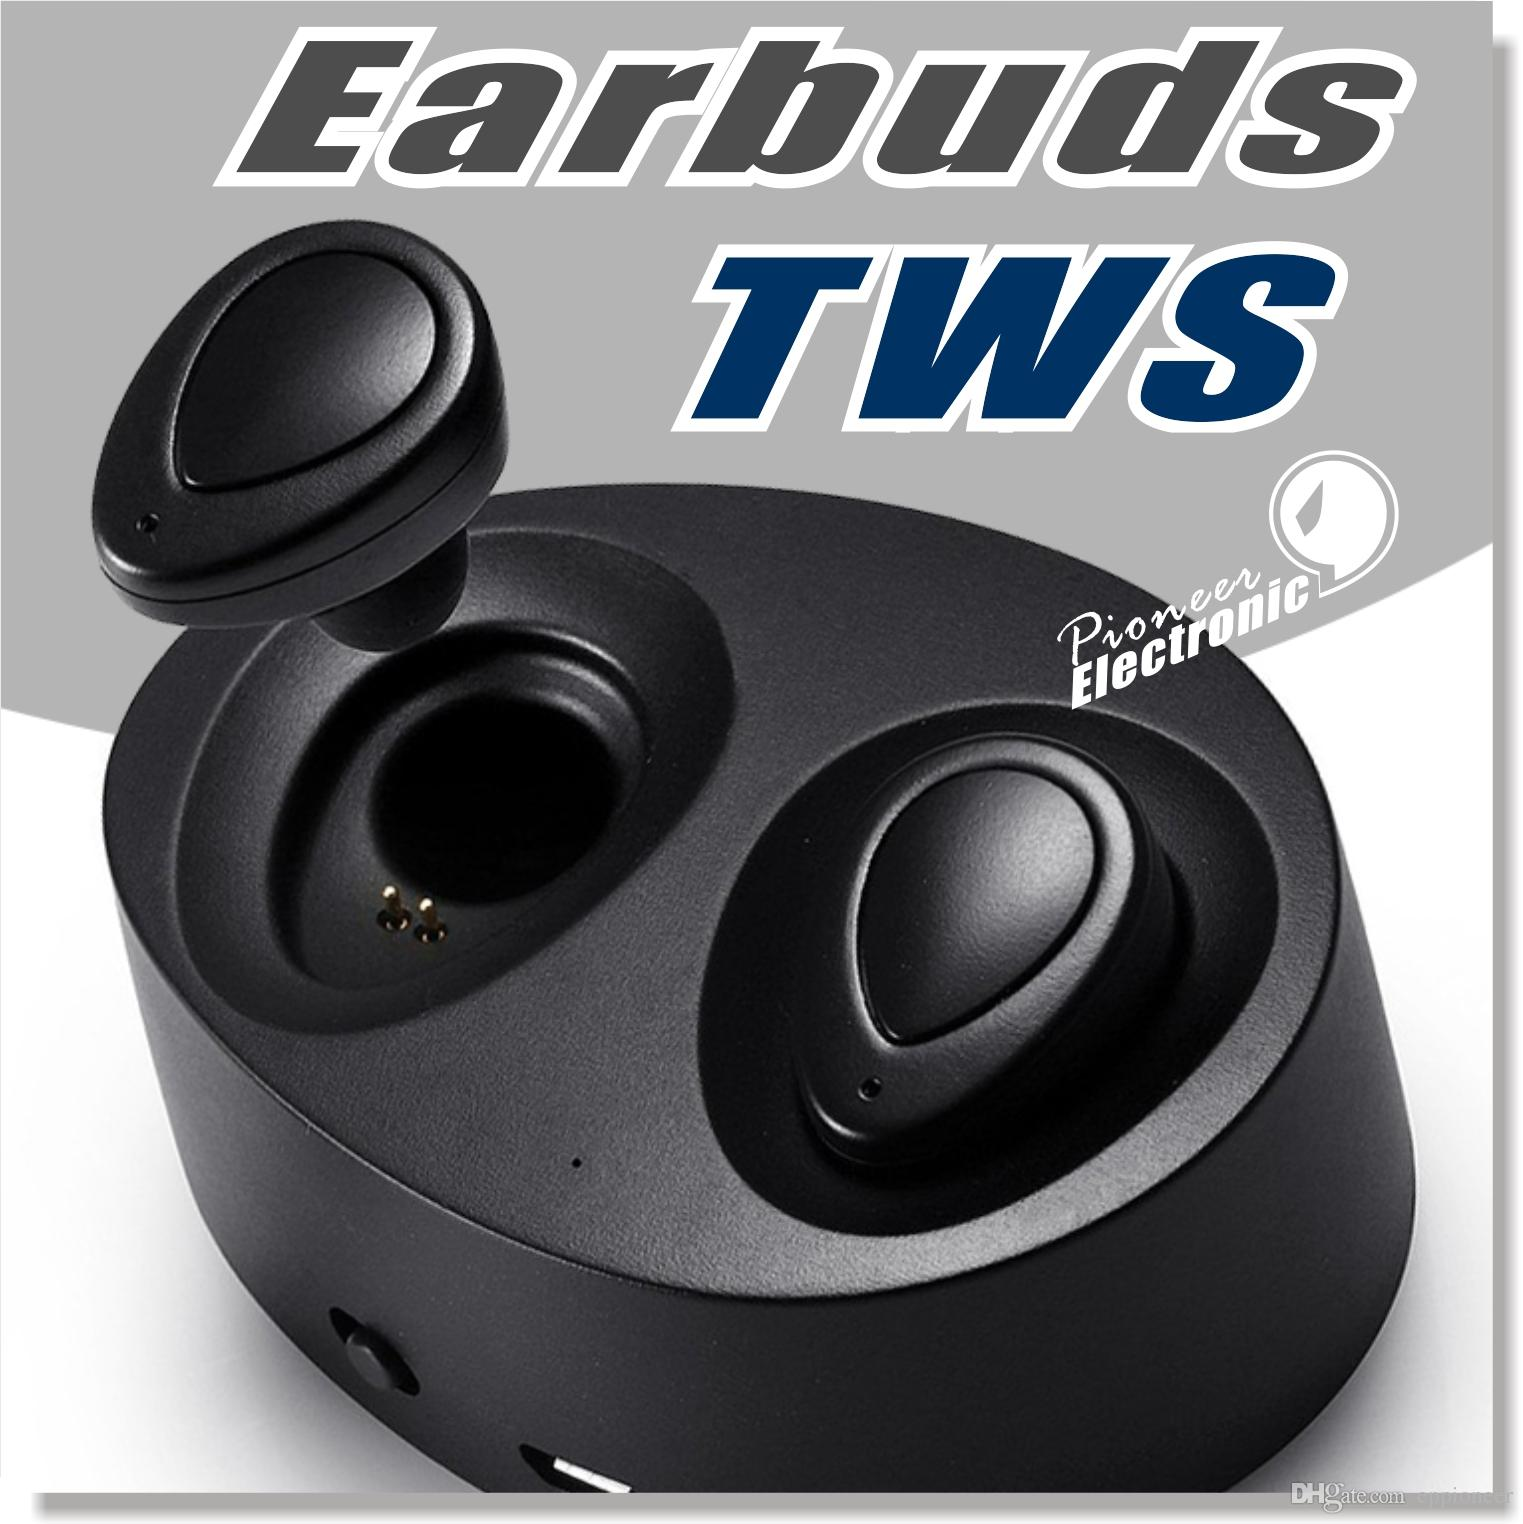 Tws Mini Bluetooth Earbuds Wireless Stereo Mp3 Earphone For Iphone 7 Plus Headphone With Charging Socket Play Music Cell Phone Earphones Best Smartphone Earbuds Cellphone Headsets From Eppioneer 13 78 Dhgate Com